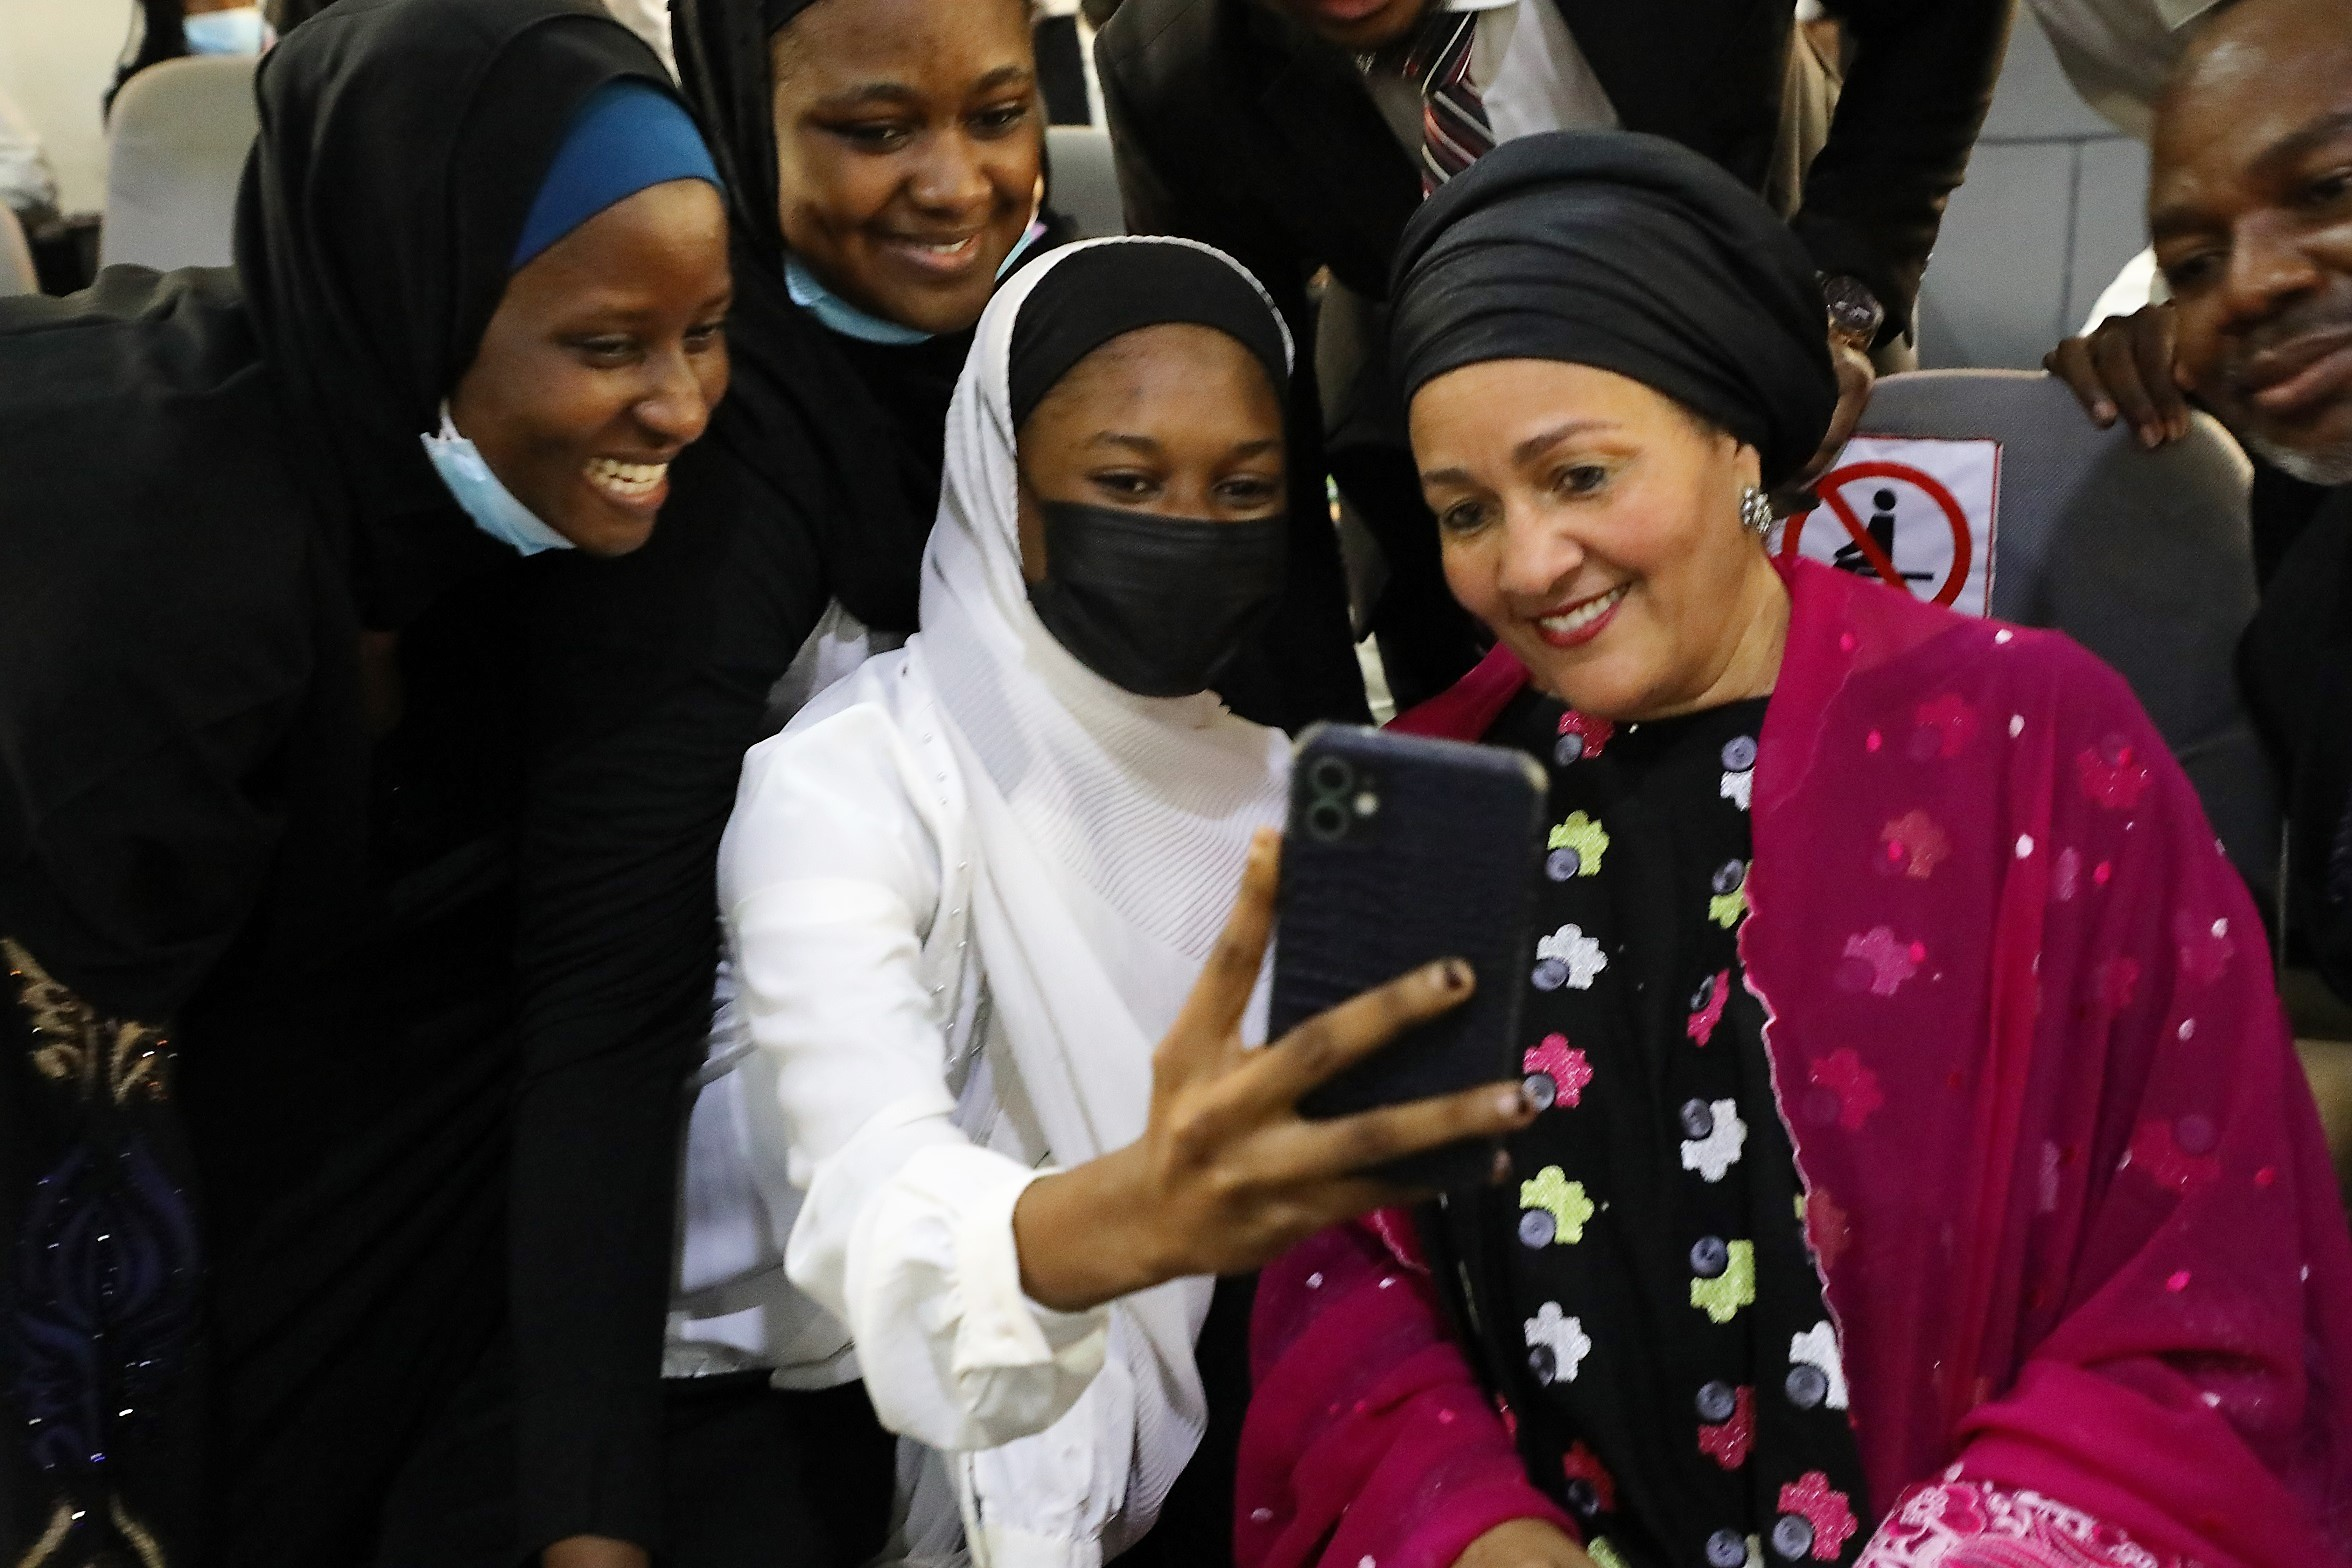 Prevention, only 'sustainable solution' to conflict, deputy UN chief tells Nigerian law students